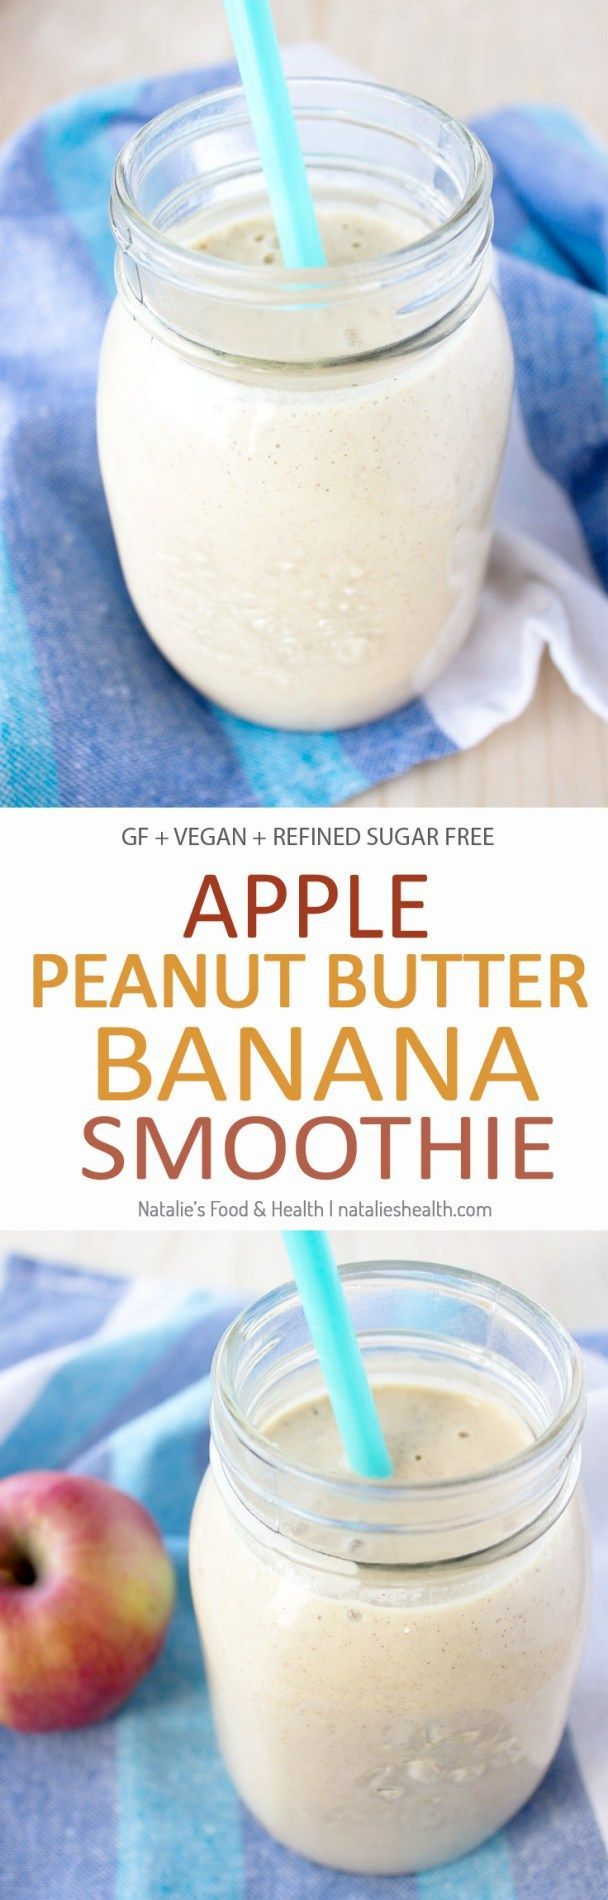 IDEA Health and Fitness Association: Apple Peanut Butter Banana Smoothie - Natalie's Fo...